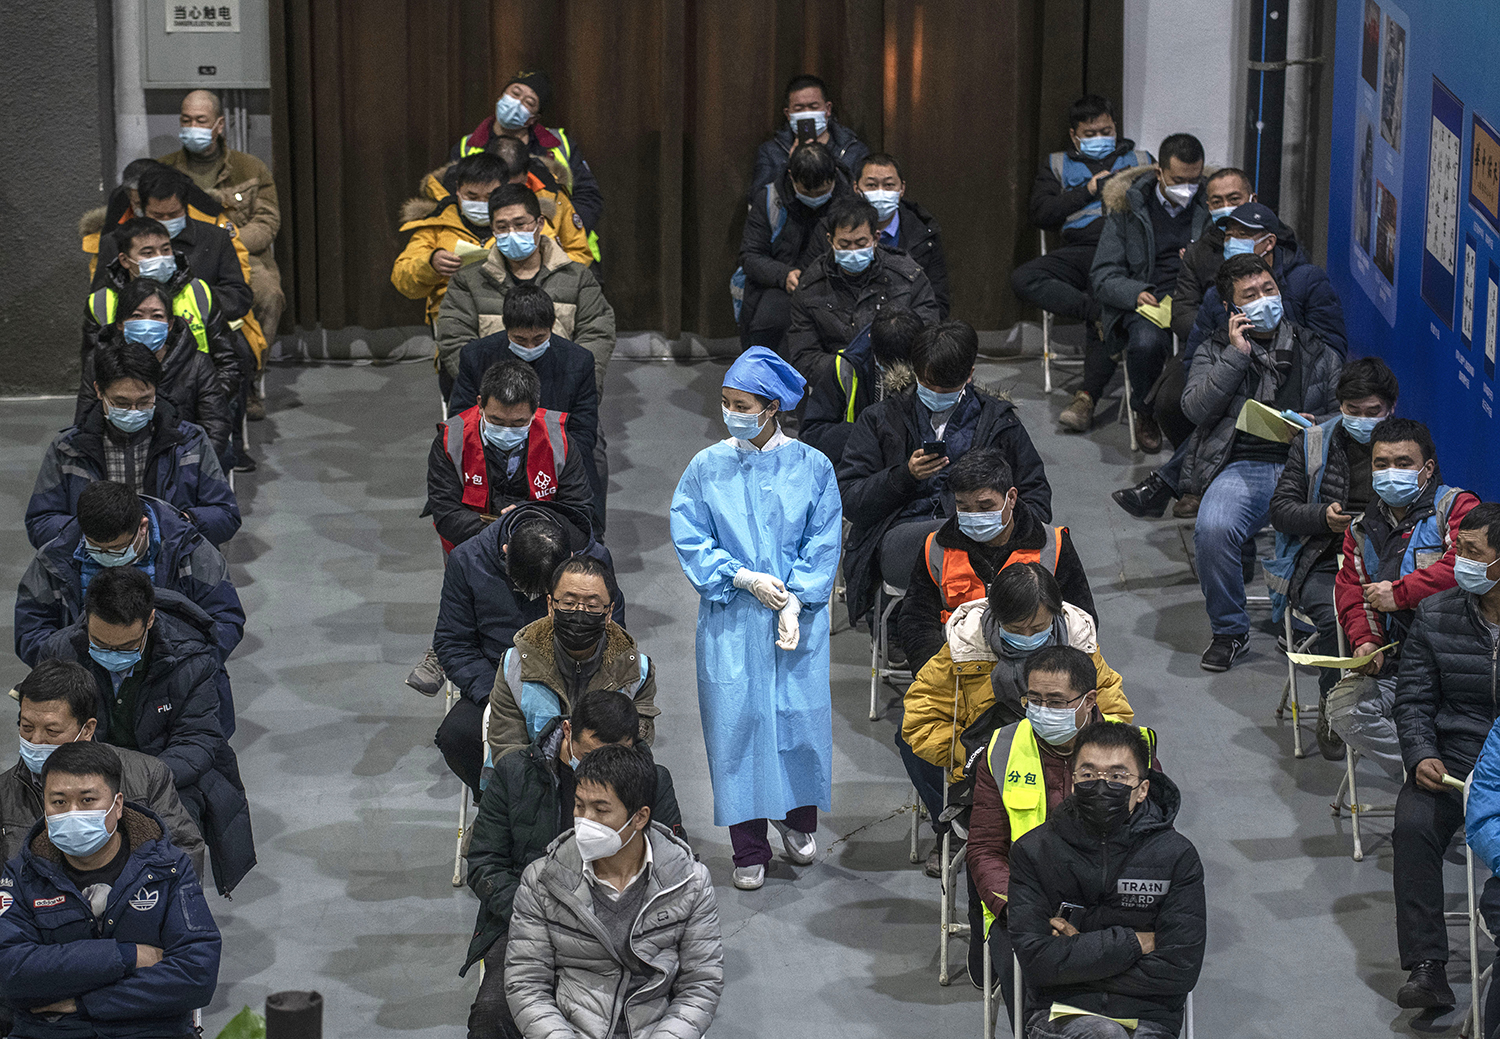 Chinese workers, including security guards, wait to receive a COVID-19 vaccine jab at a mass vaccination center for Chaoyang District in Beijing on Jan. 15.